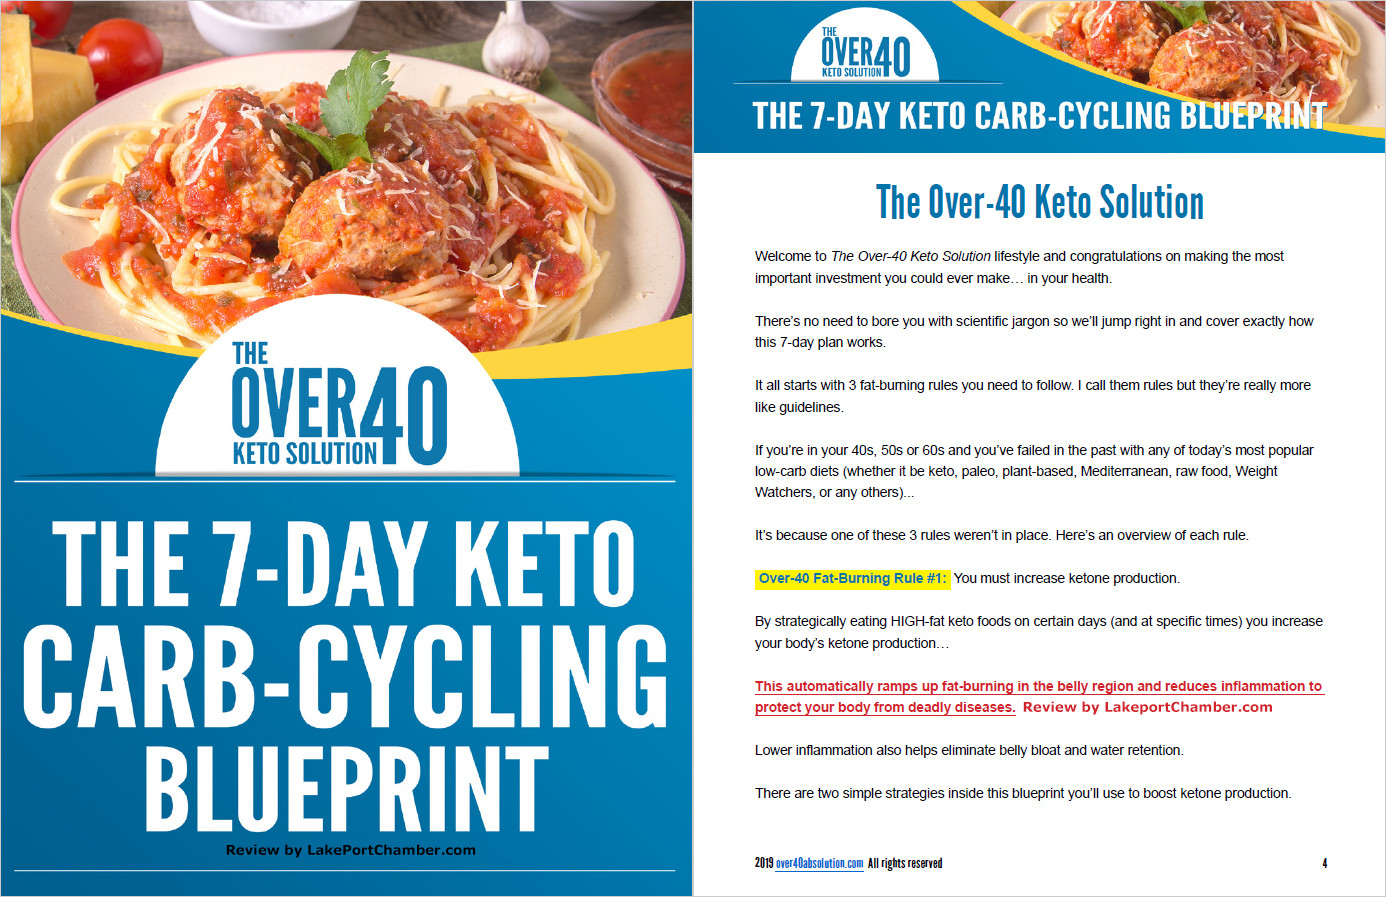 The Over 40 Keto Solution Table of Contents